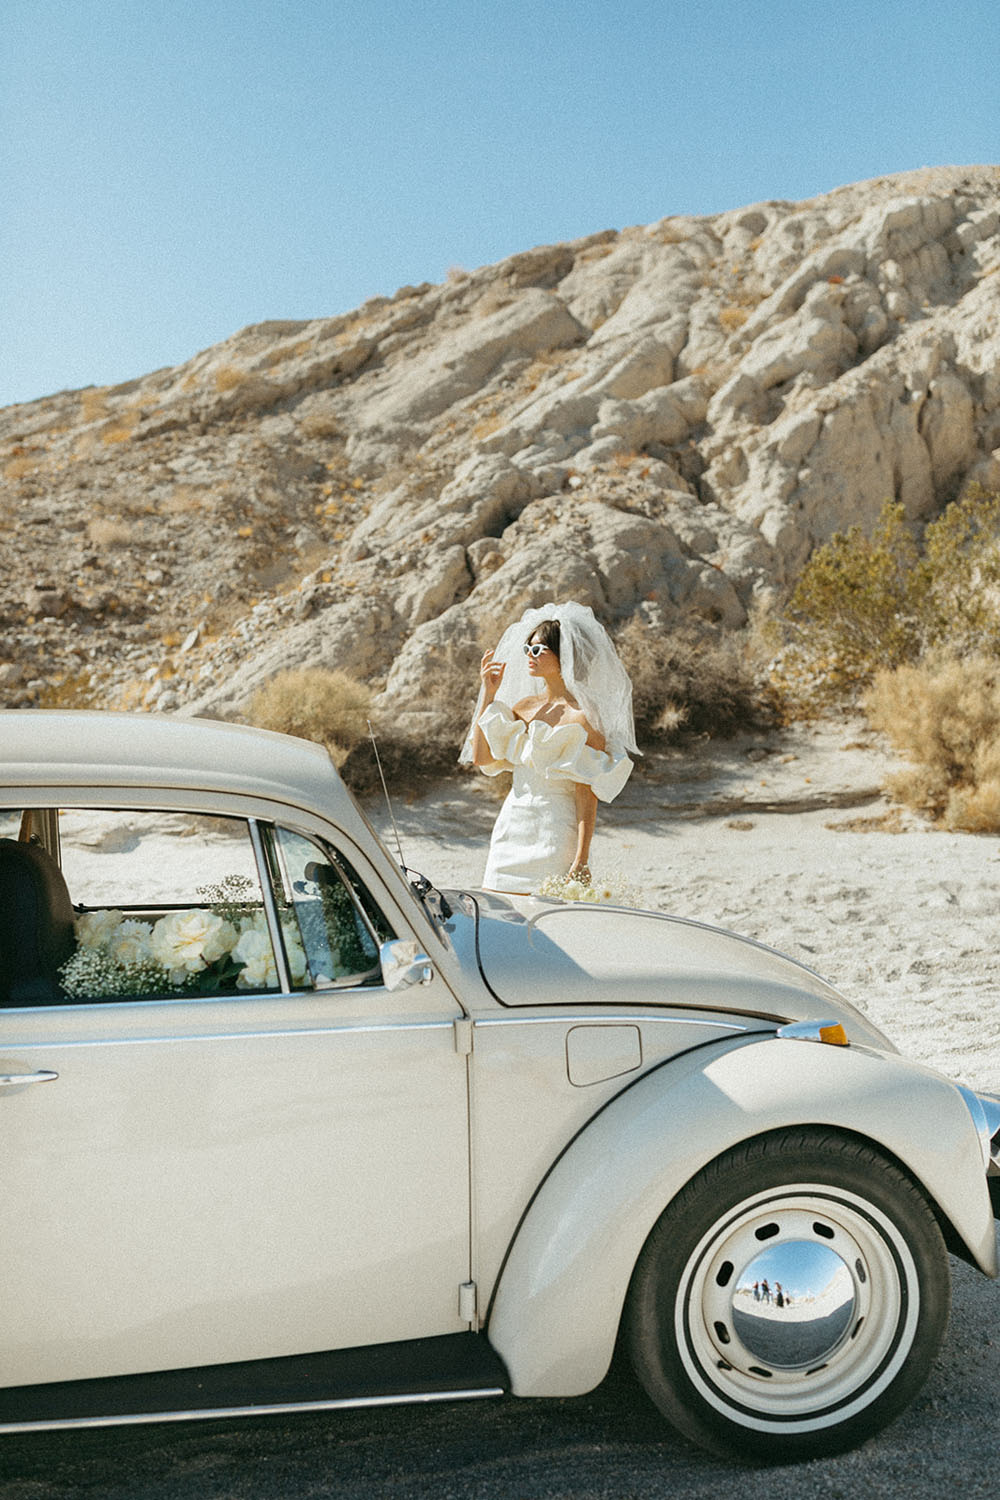 etro bridal style with the most adorable mini dress!